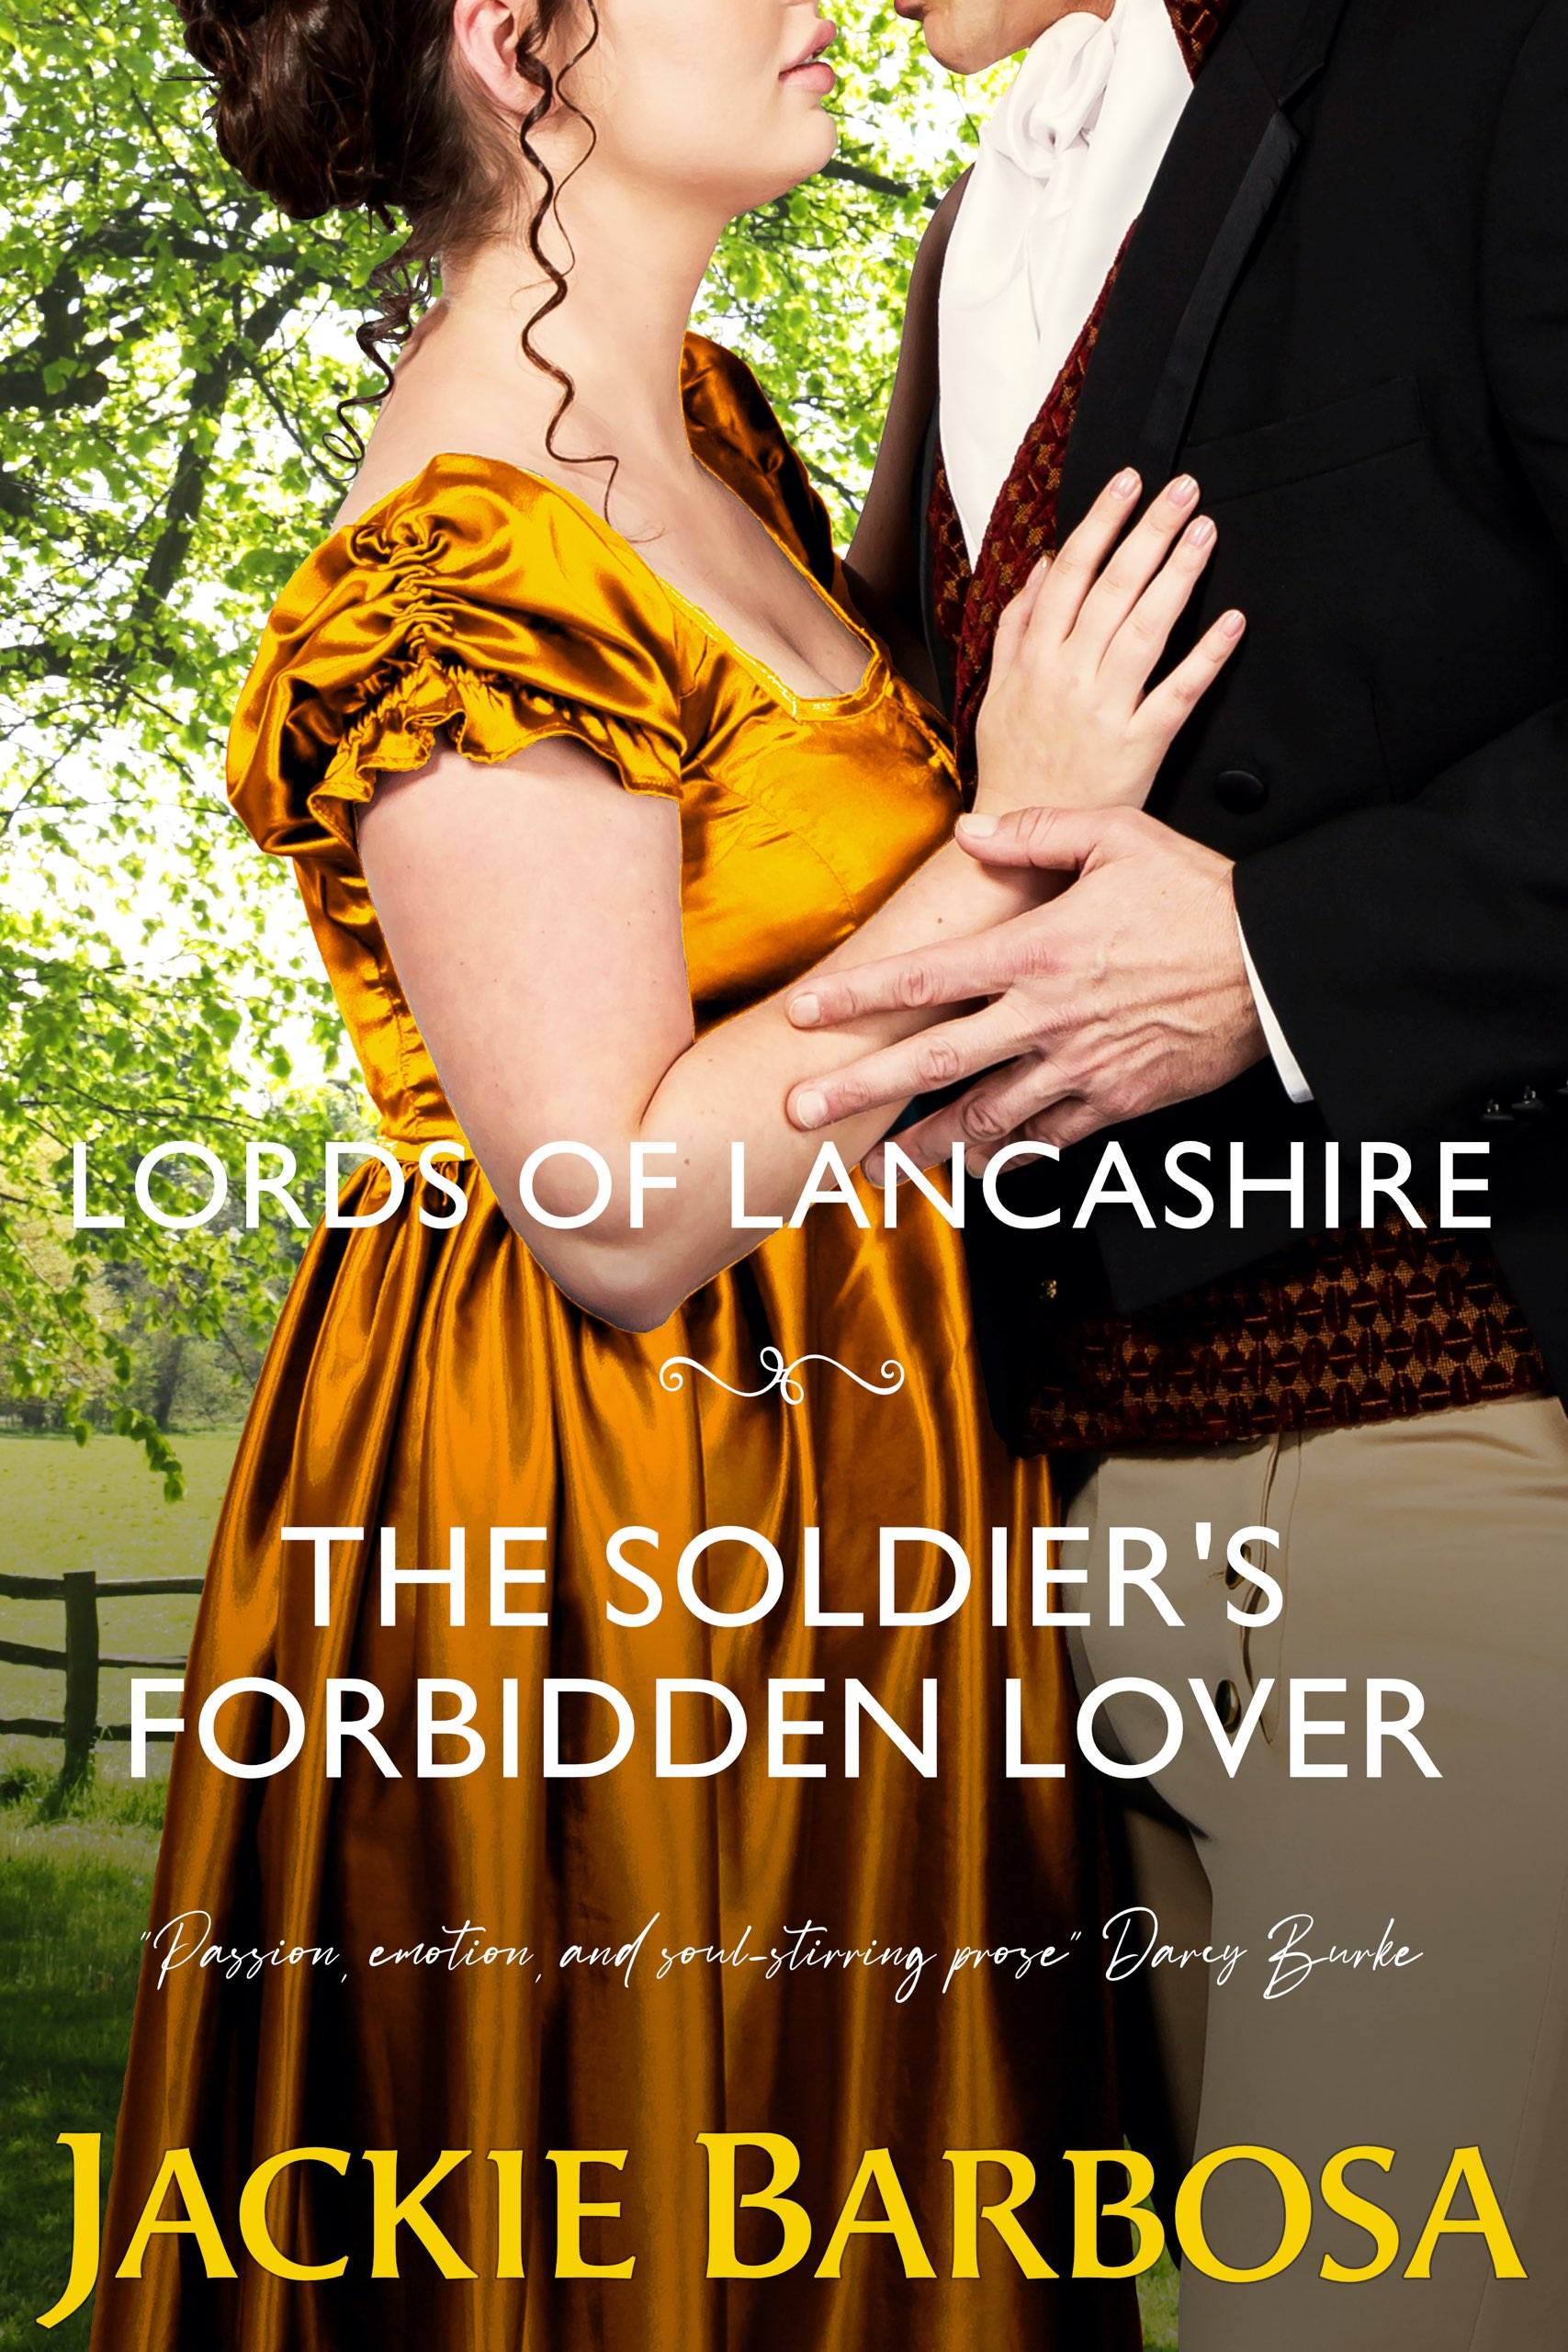 The Soldier's Forbidden Lover by Jackie Barbosa